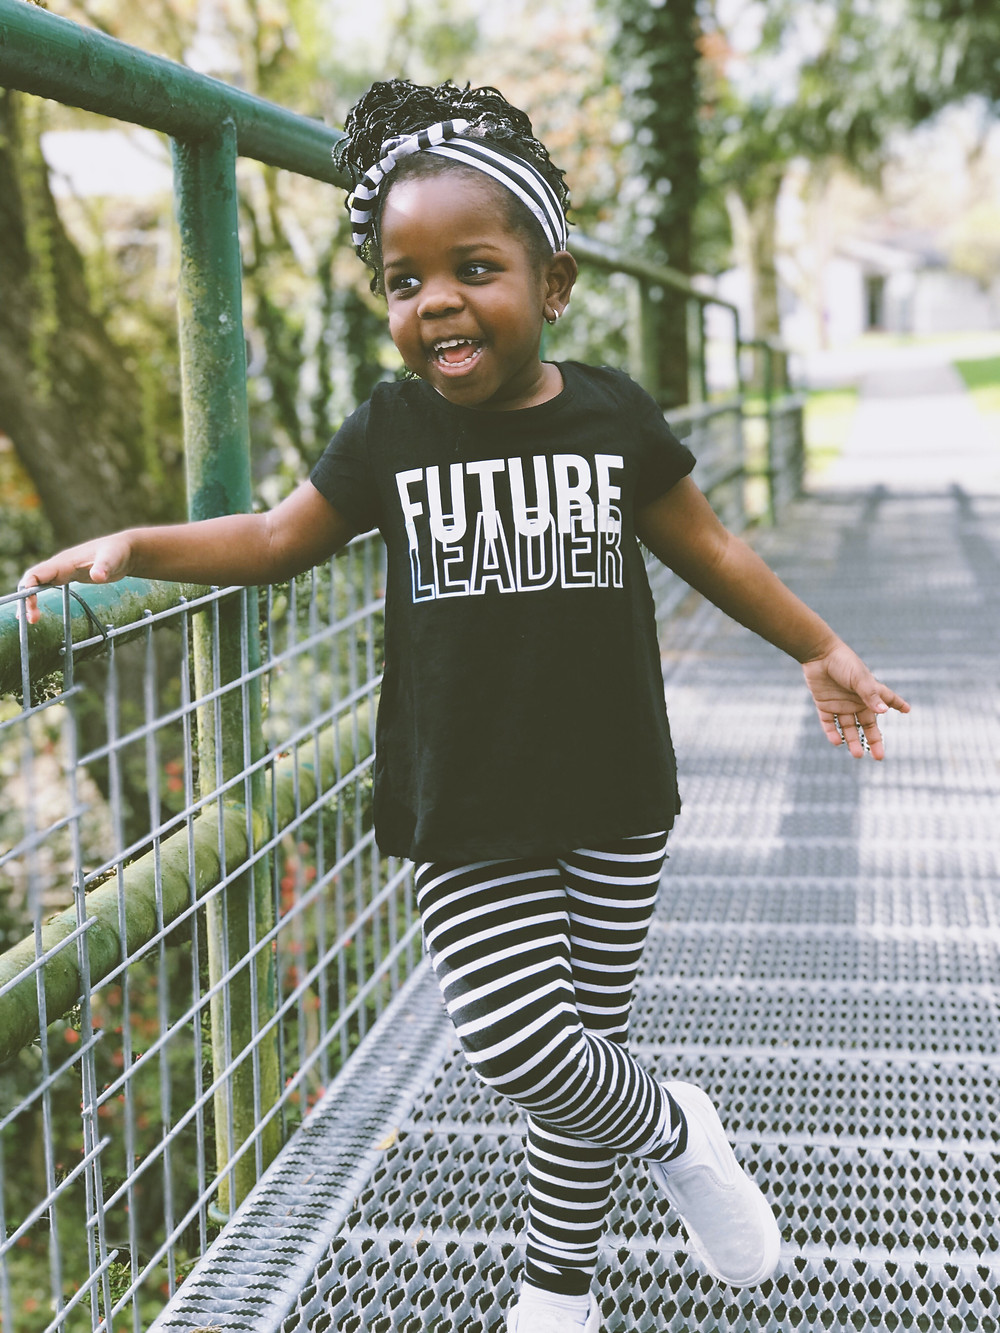 """A toddler stands on a bridge in a park with her legs crossed and a smile on her face. On her t-shirt, it says: """"Future Leader"""""""